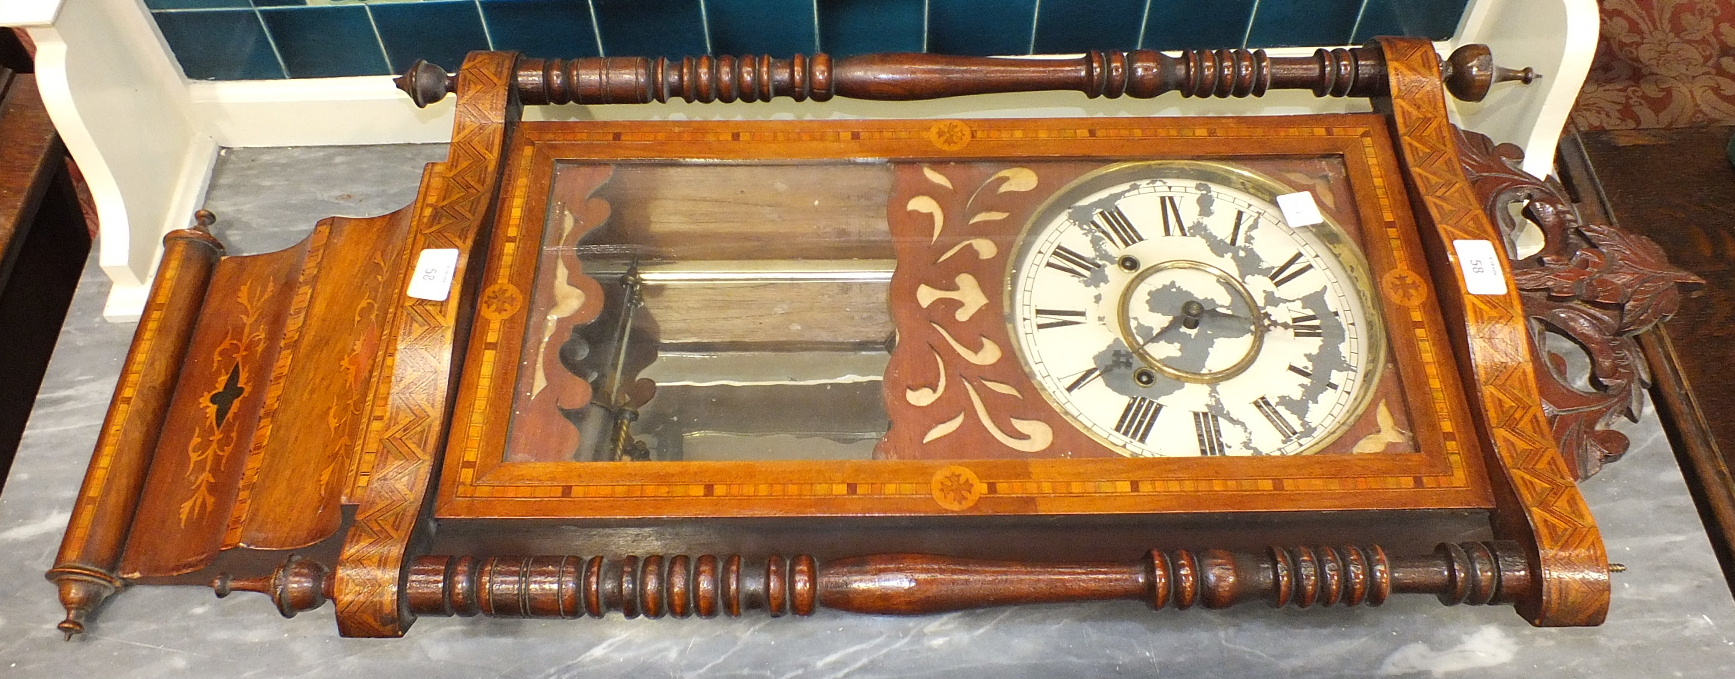 Lot 58 - An inlaid stained wood case striking wall clock, (a/f, paint flaking from dial), 94cm high.